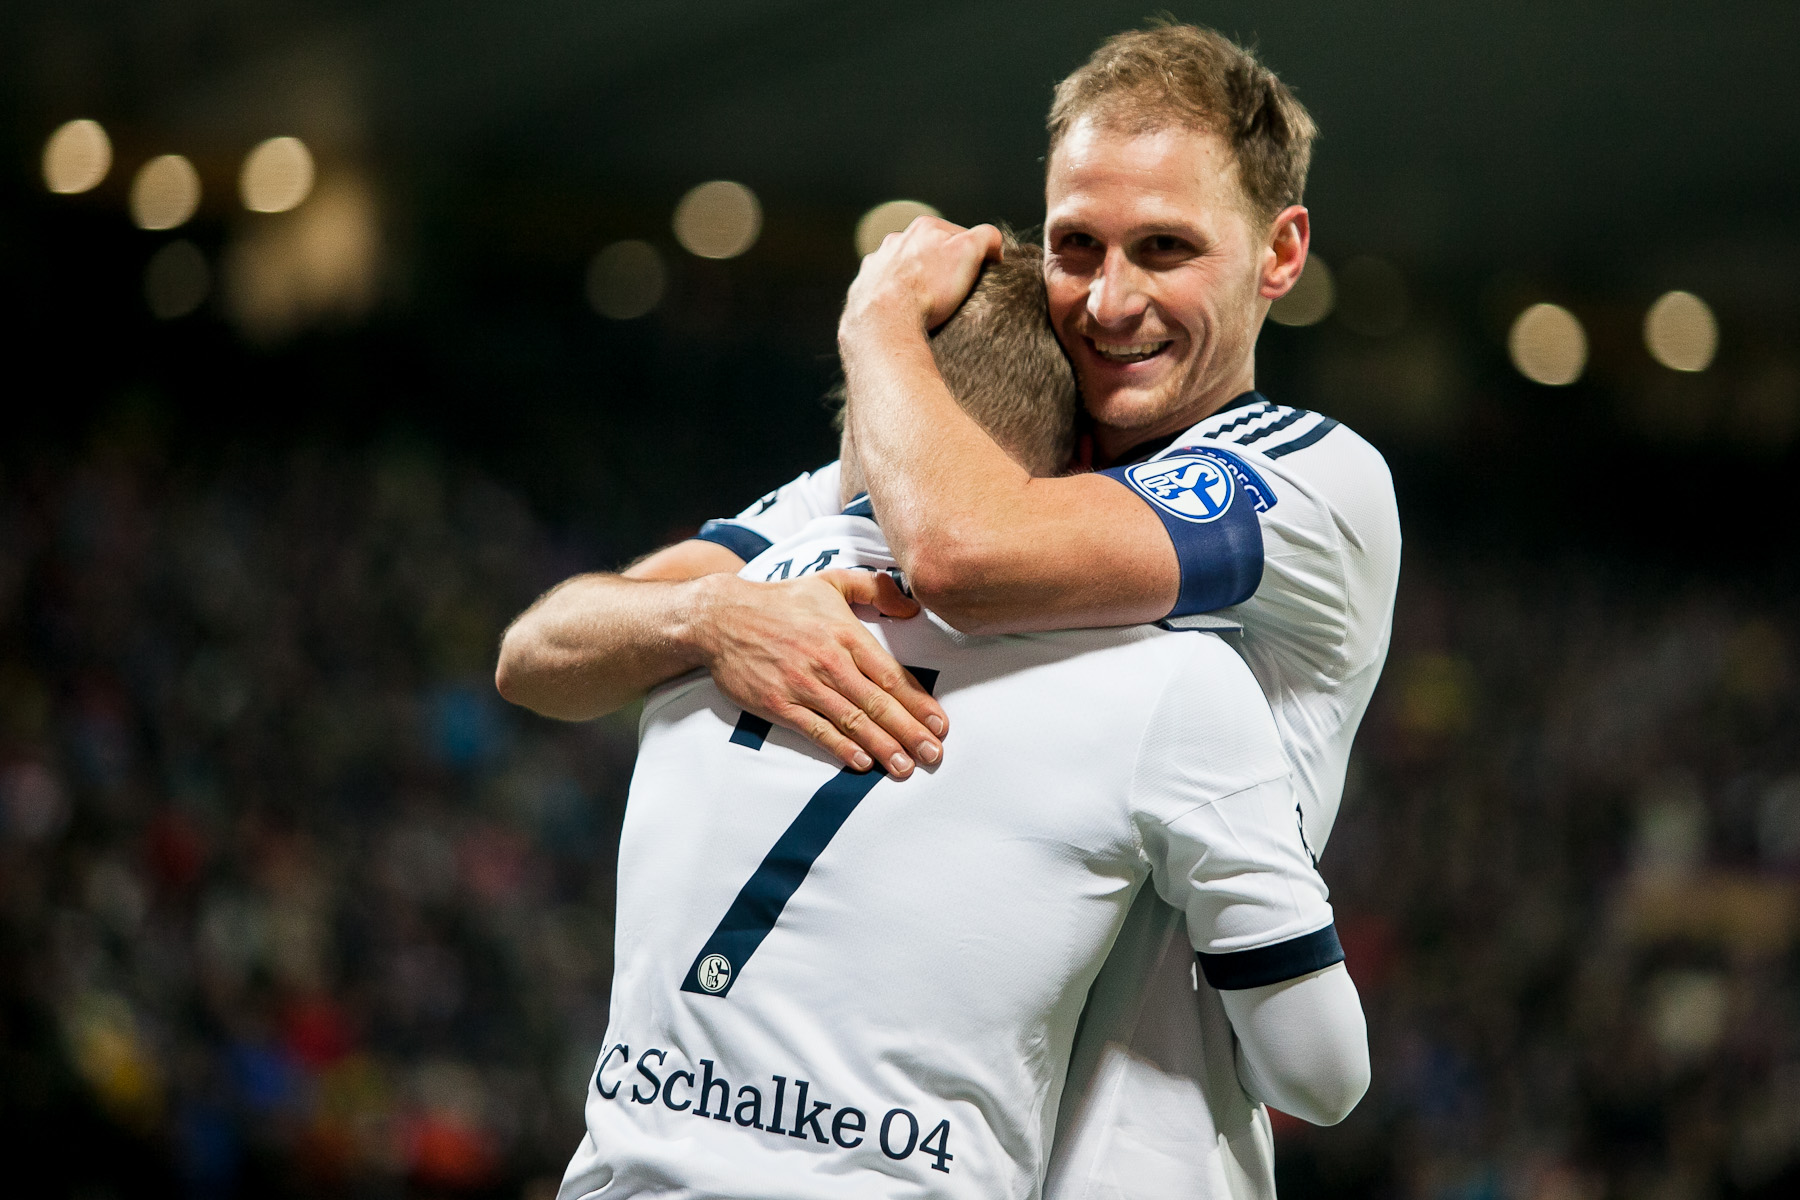 Benedikt Hoewedes of FC Schalke 04 hugs his teammate Max Meyer who scored against NK Maribor during the UEFA Champions League Group G match on December 10 in Maribor, Slovenia.